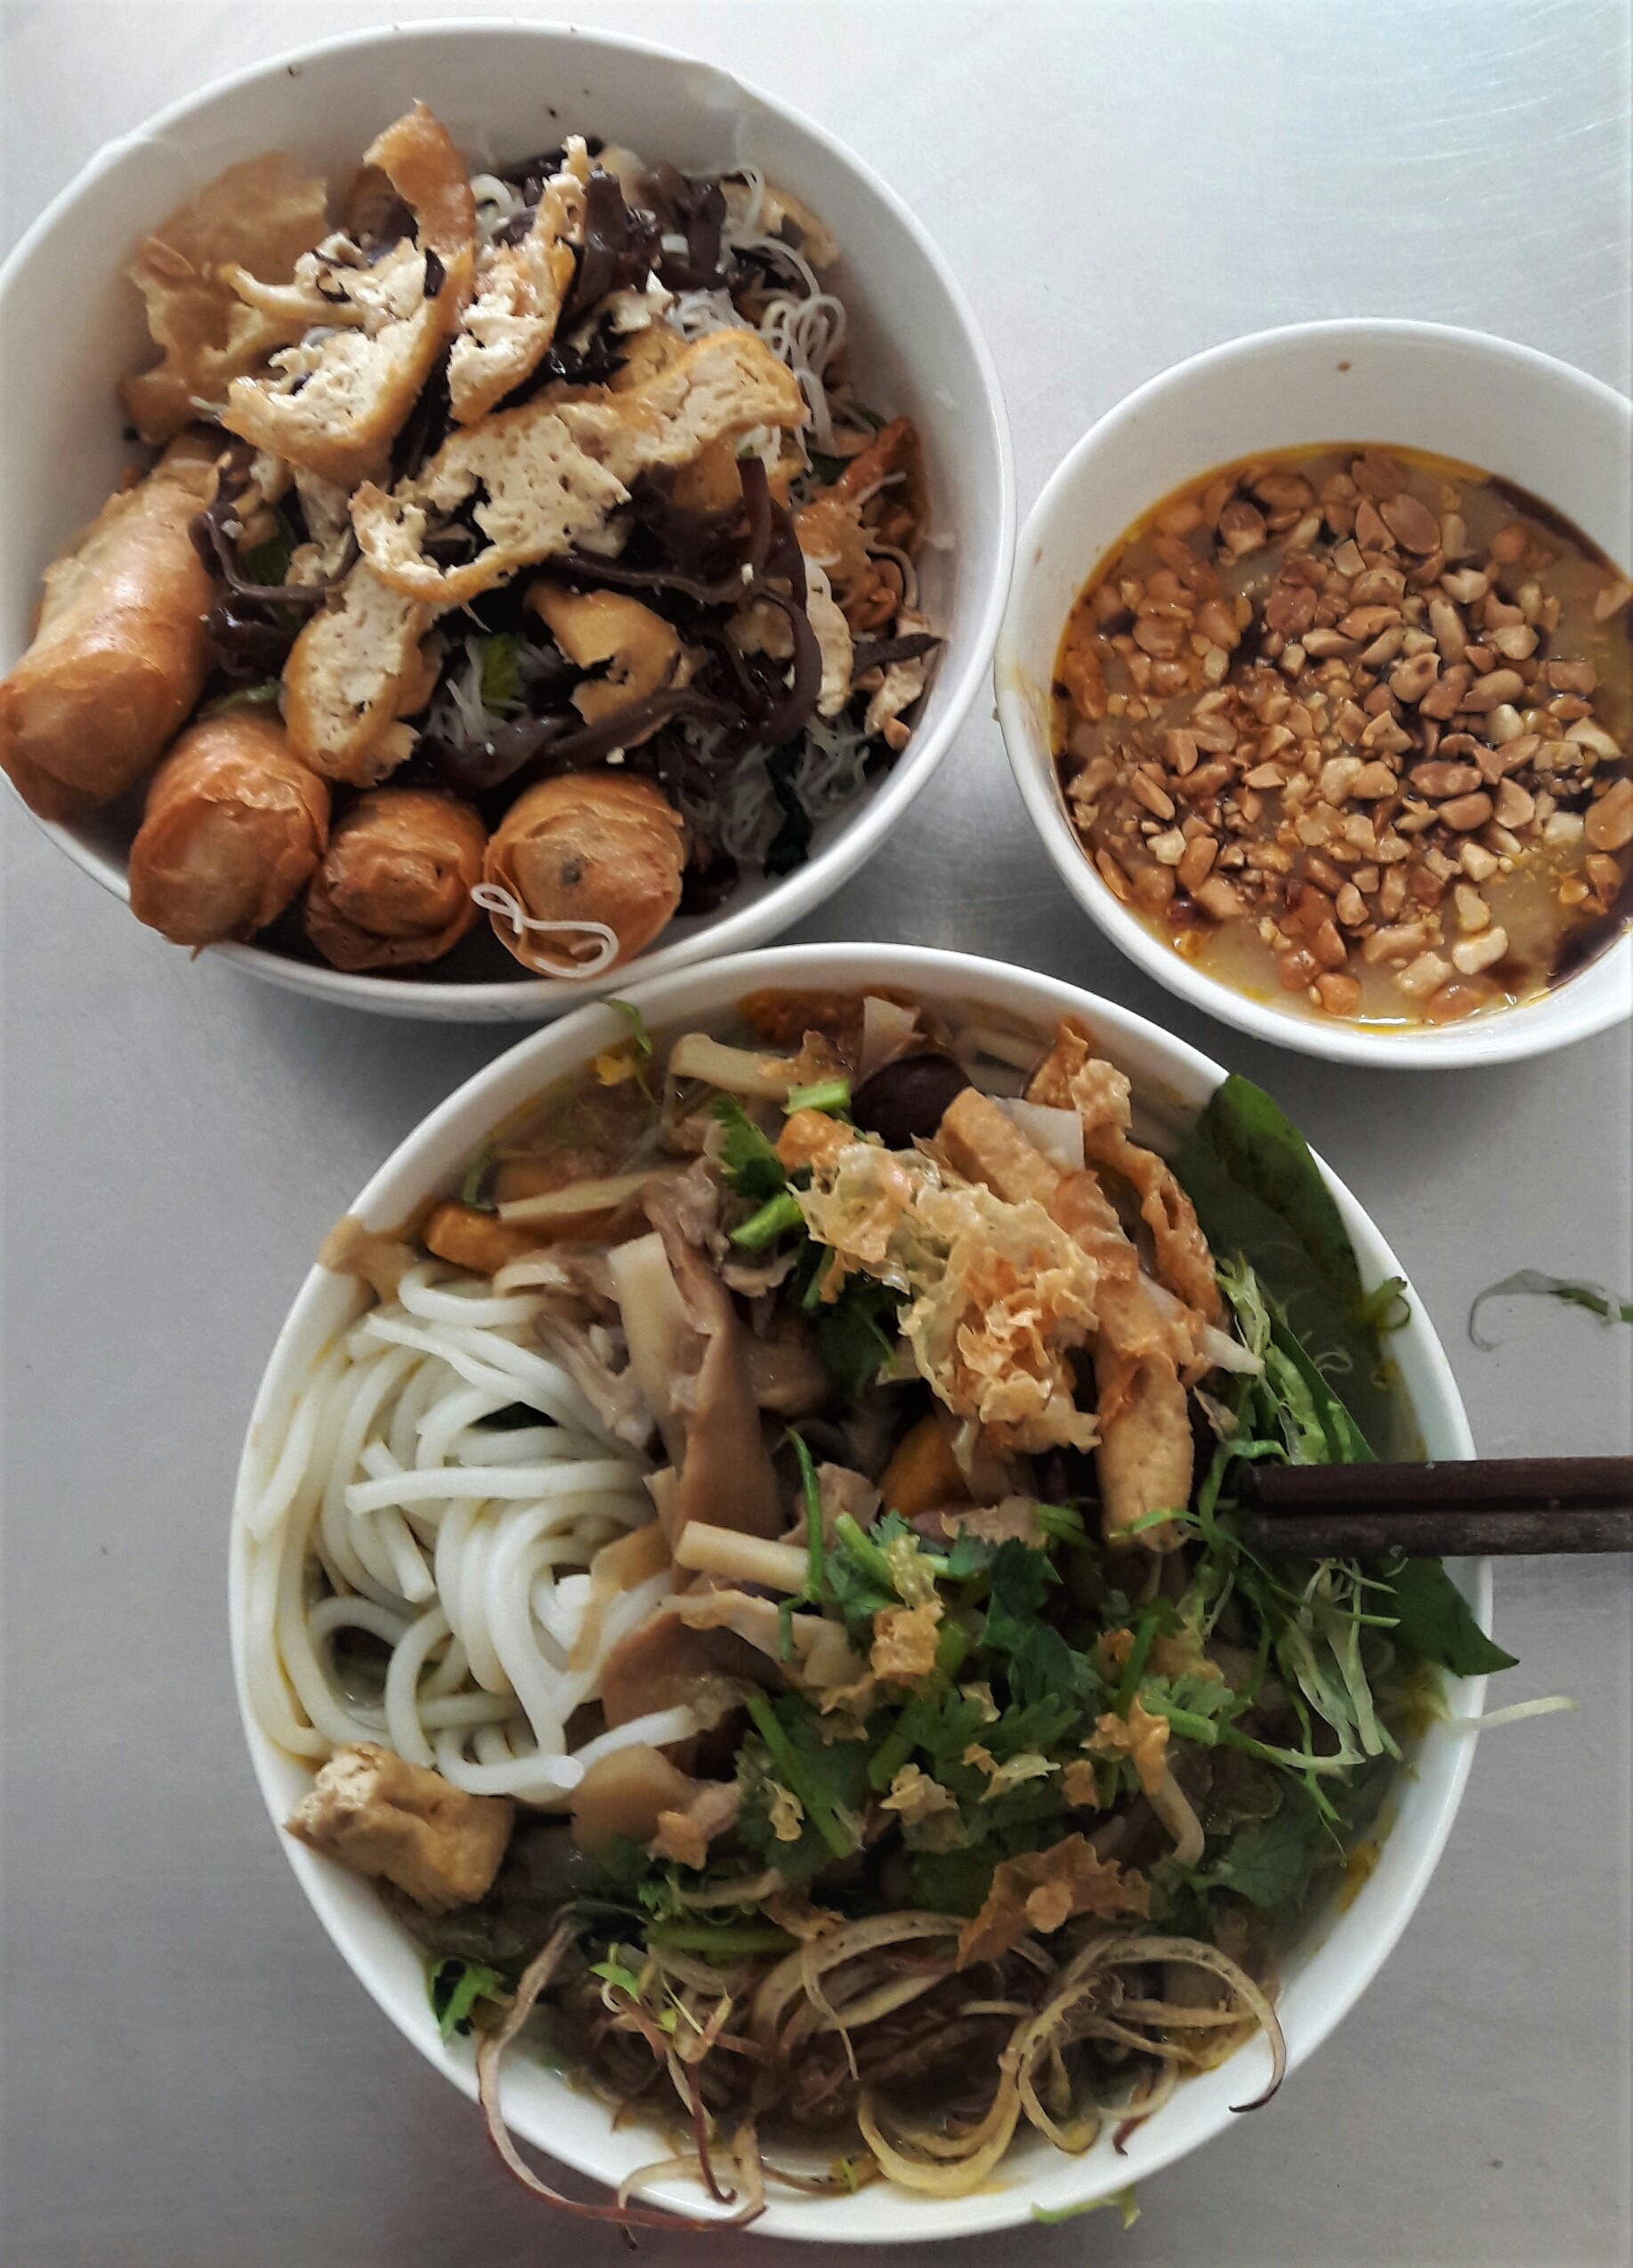 Bun chay noodles and cha gio spring rolls